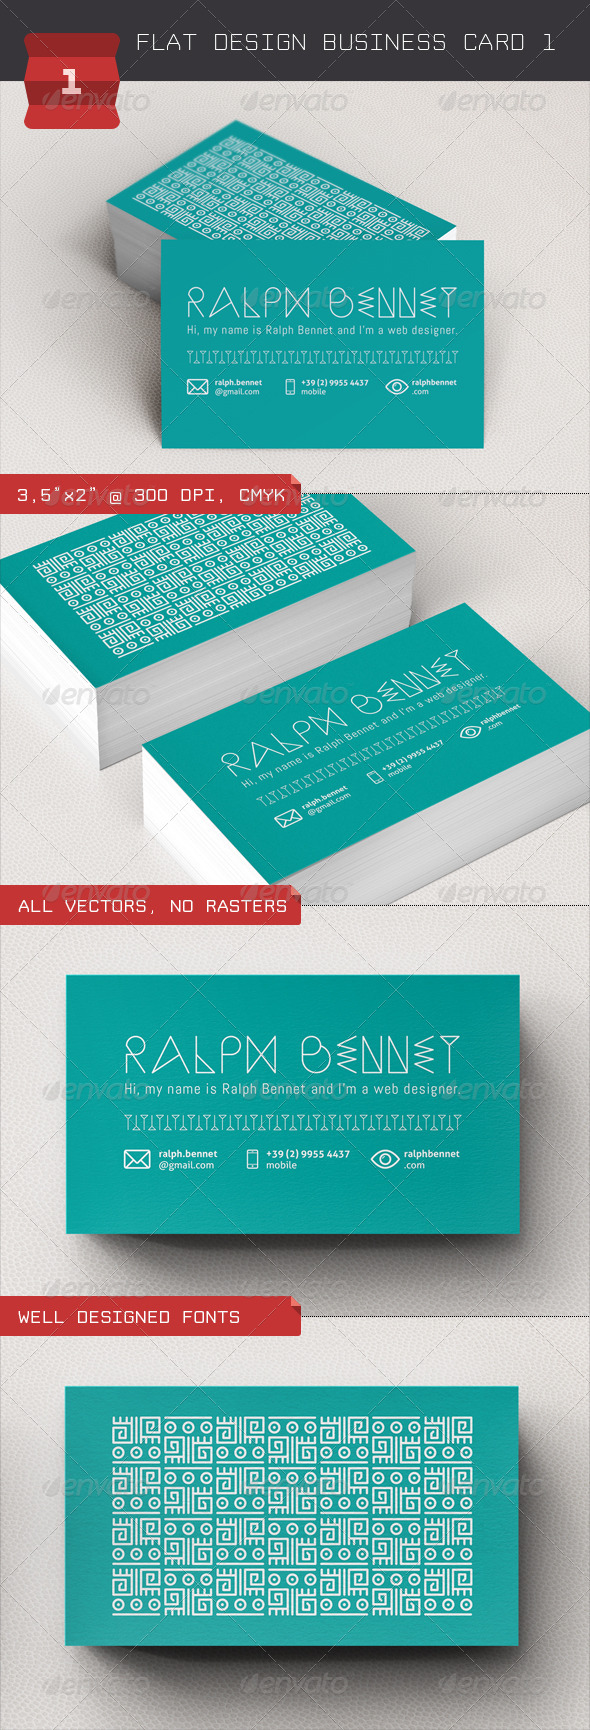 GraphicRiver Flat Design Business Card 1 4761354